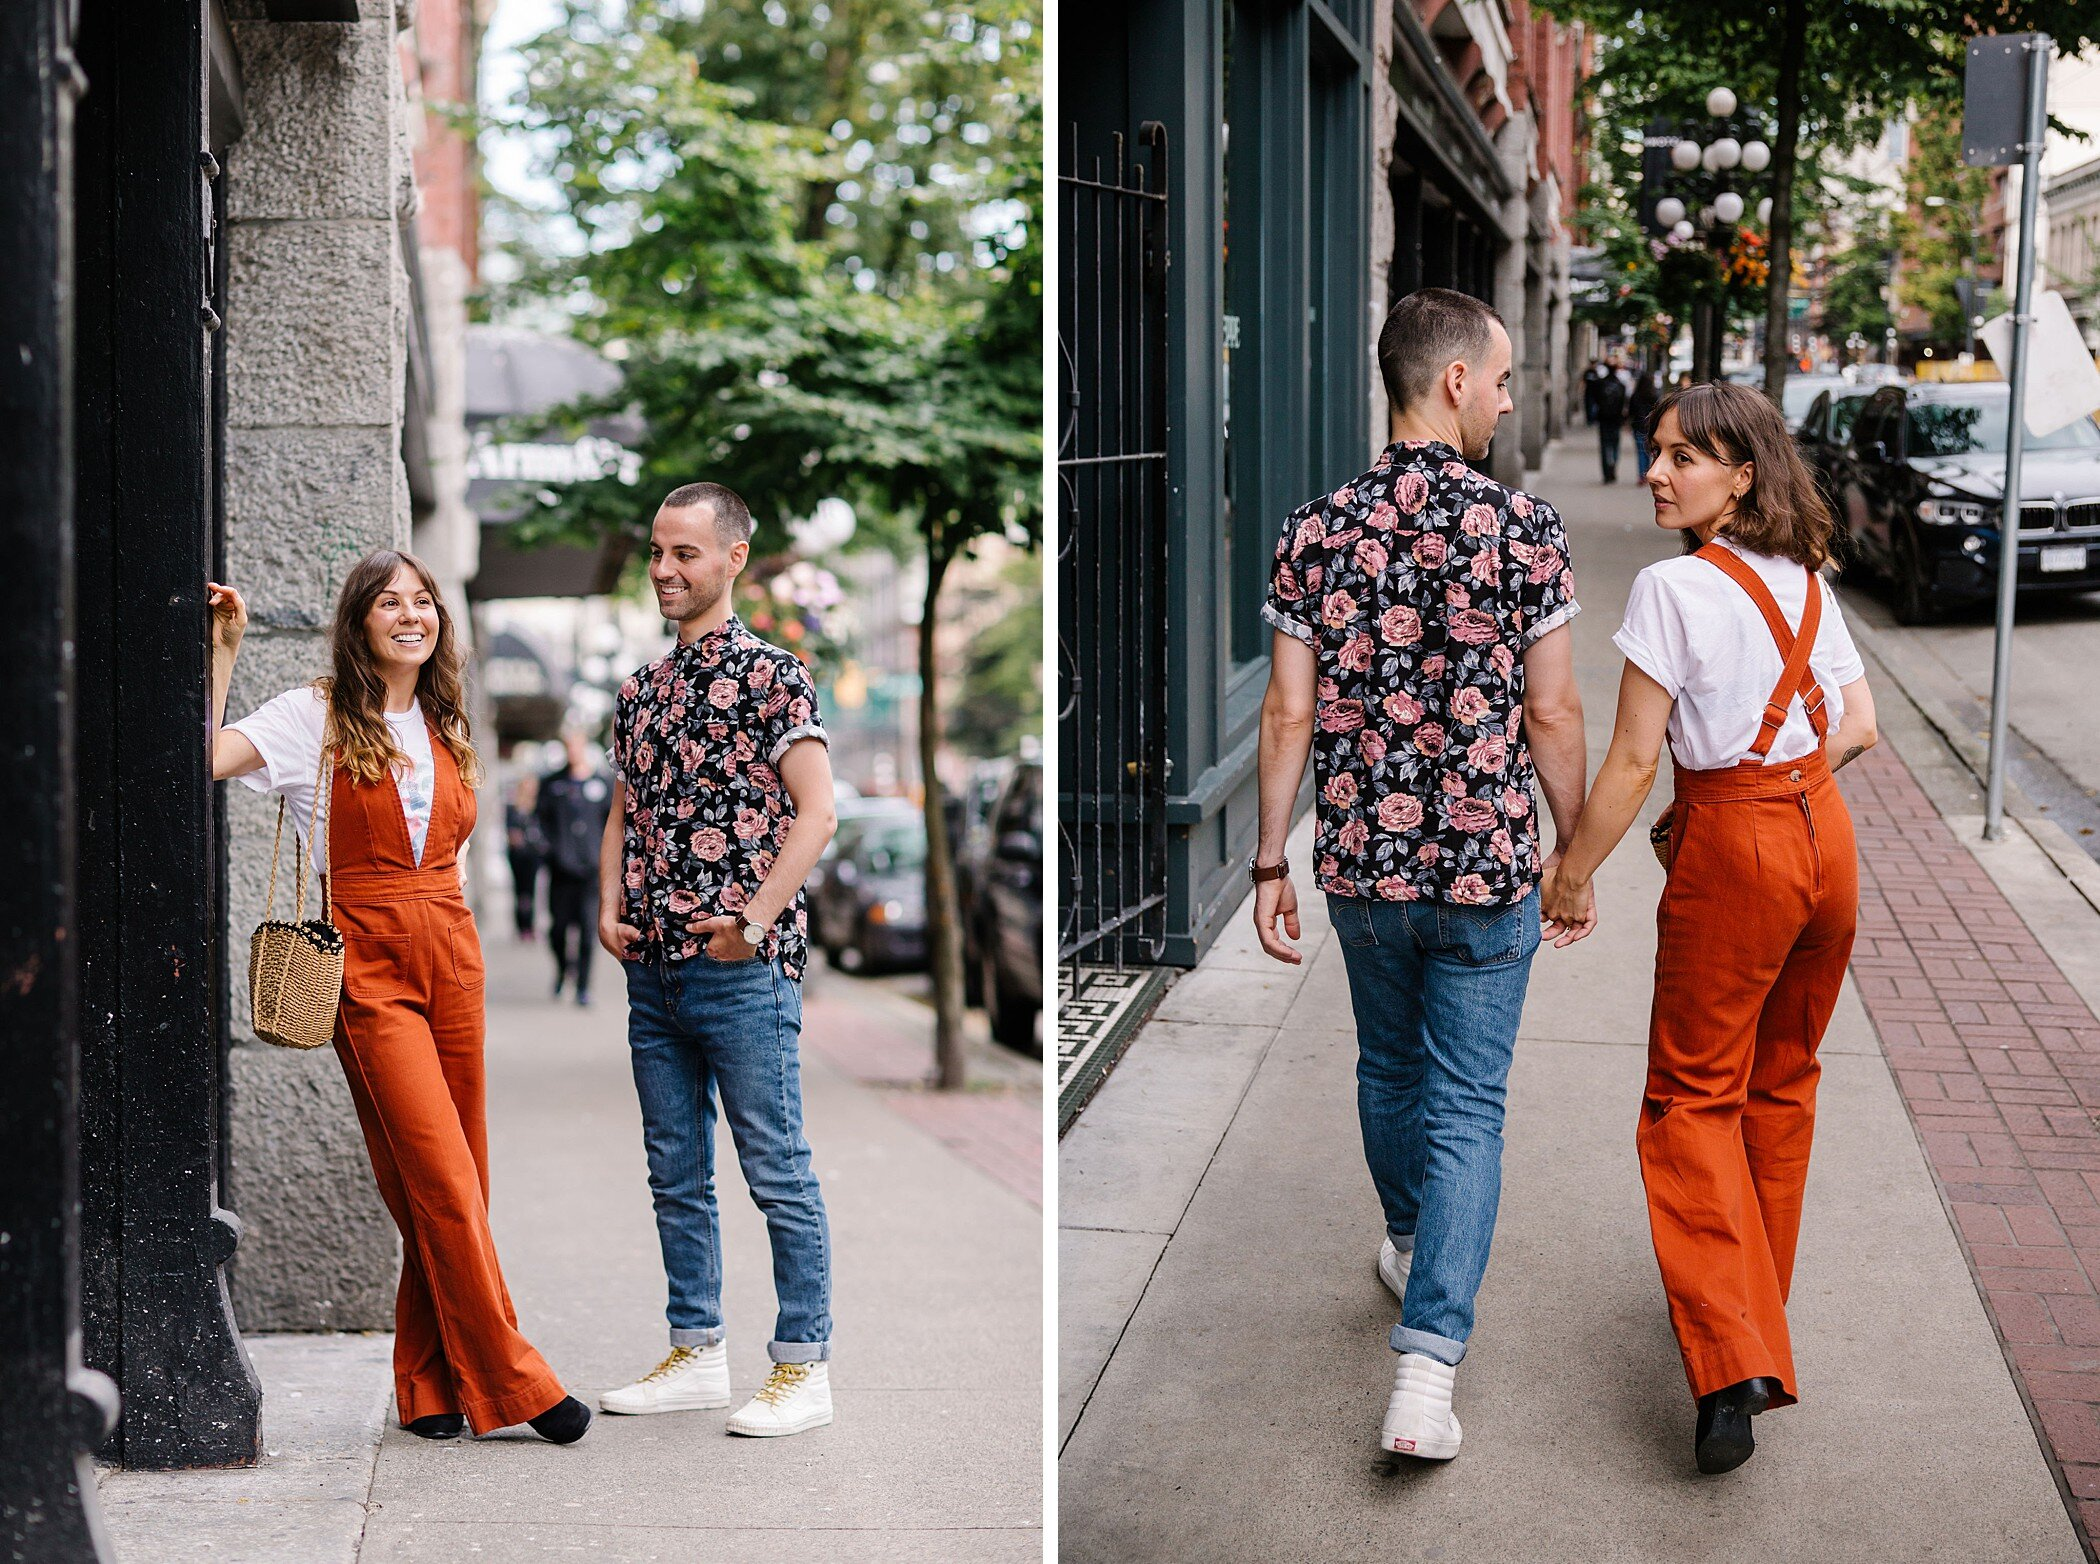 July14.DanandRo2743 (1)_Note Photography Documentary Photographer Wedding Photos Vancouver B.C. Best 2019 2020 Jericho Beach Engagement Session Gastown Di Beppe DiBeppe.jpg